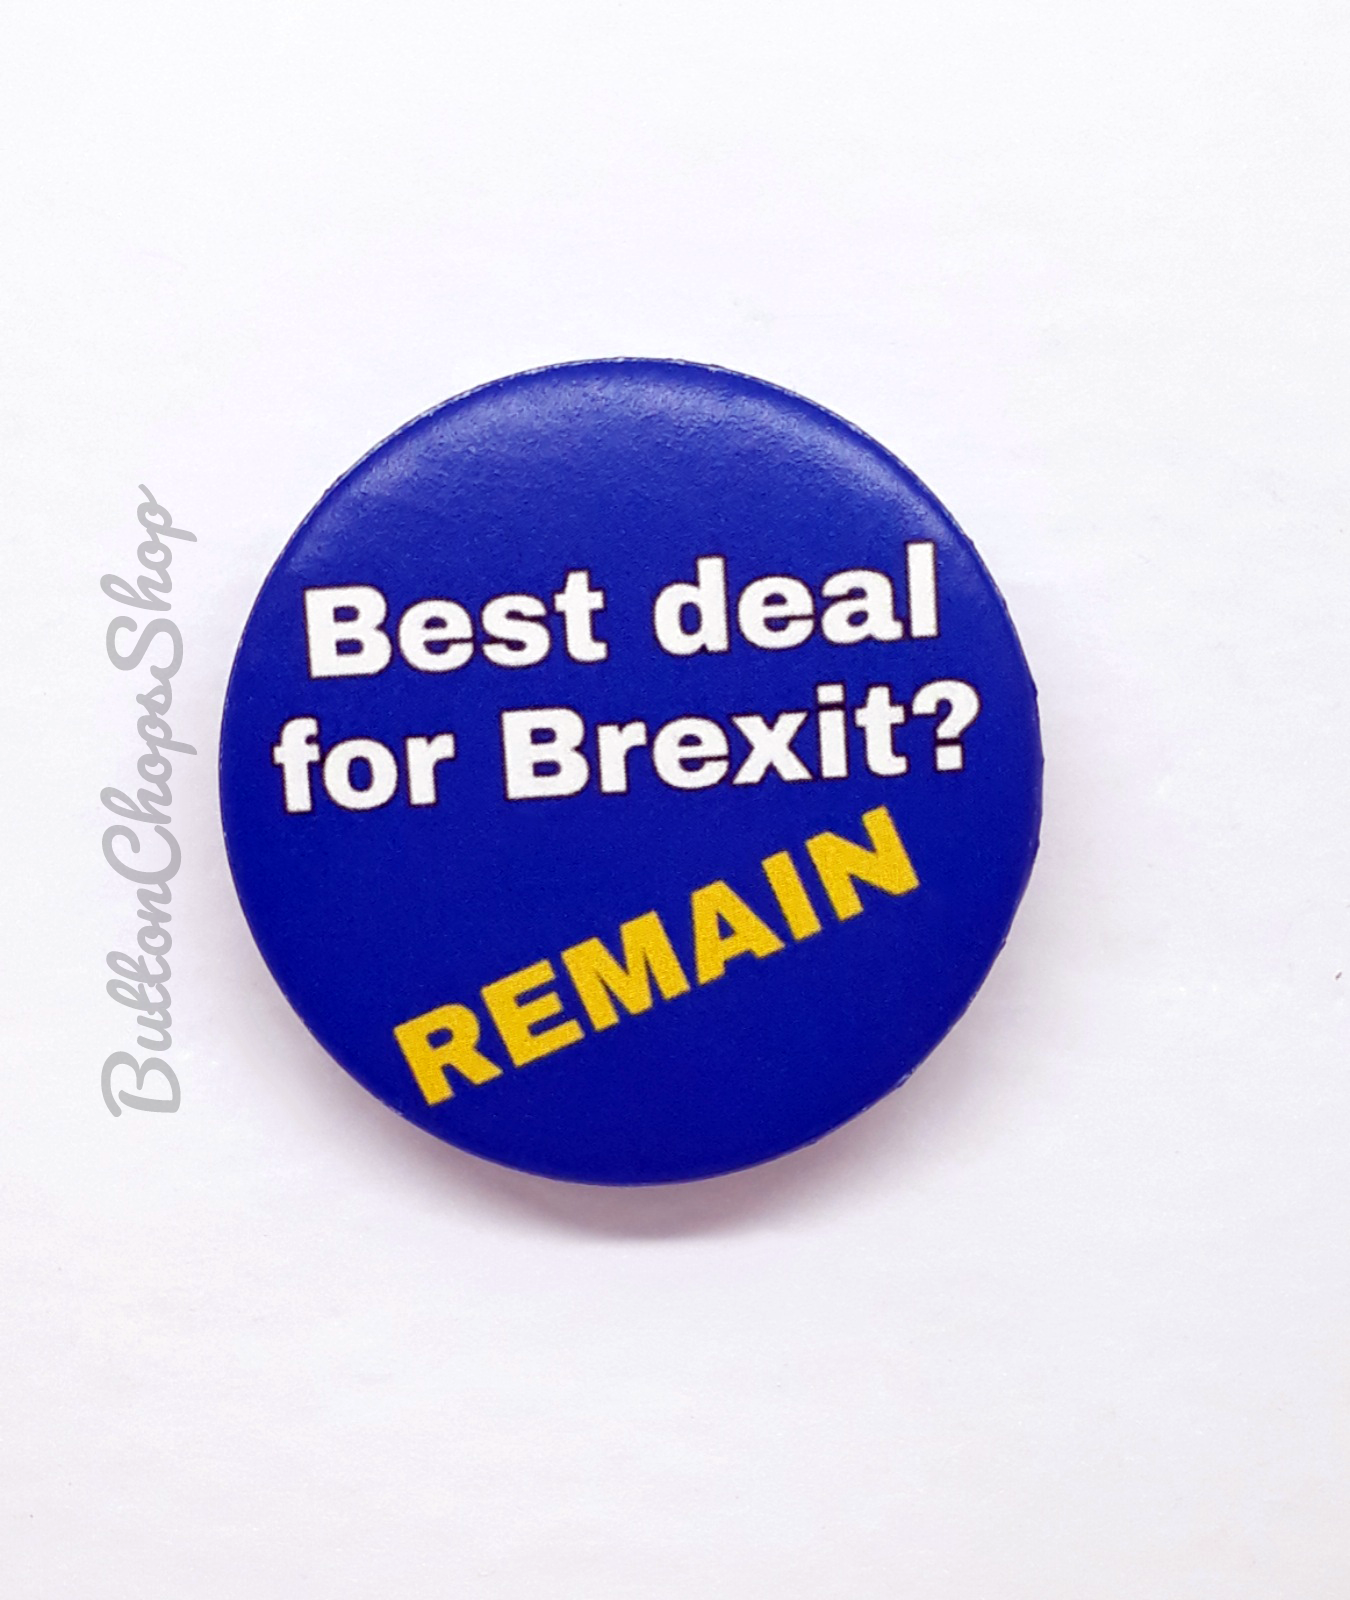 Best deal brexit ps